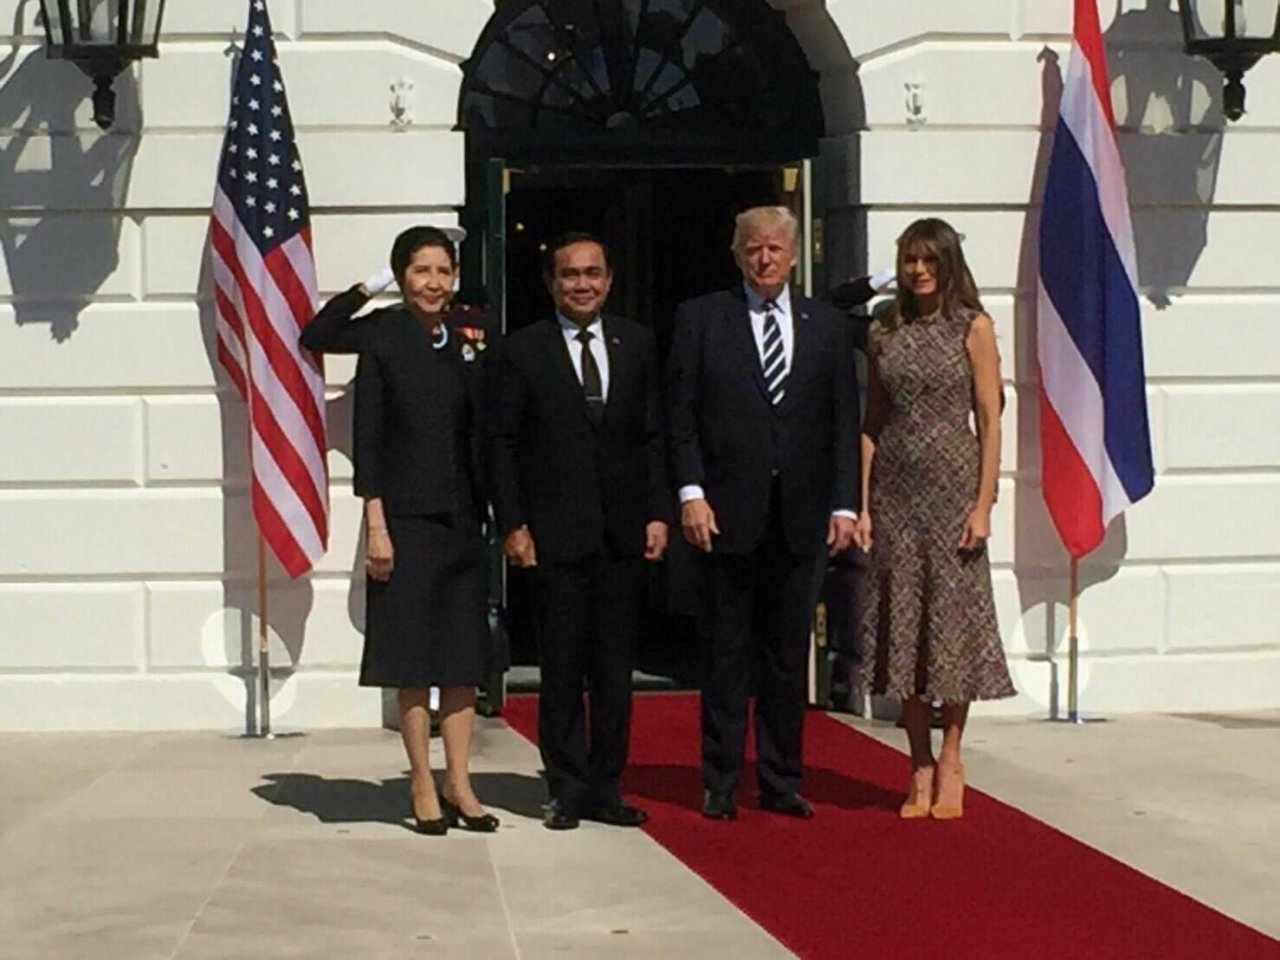 Trump seeking better trade ties with Thailand